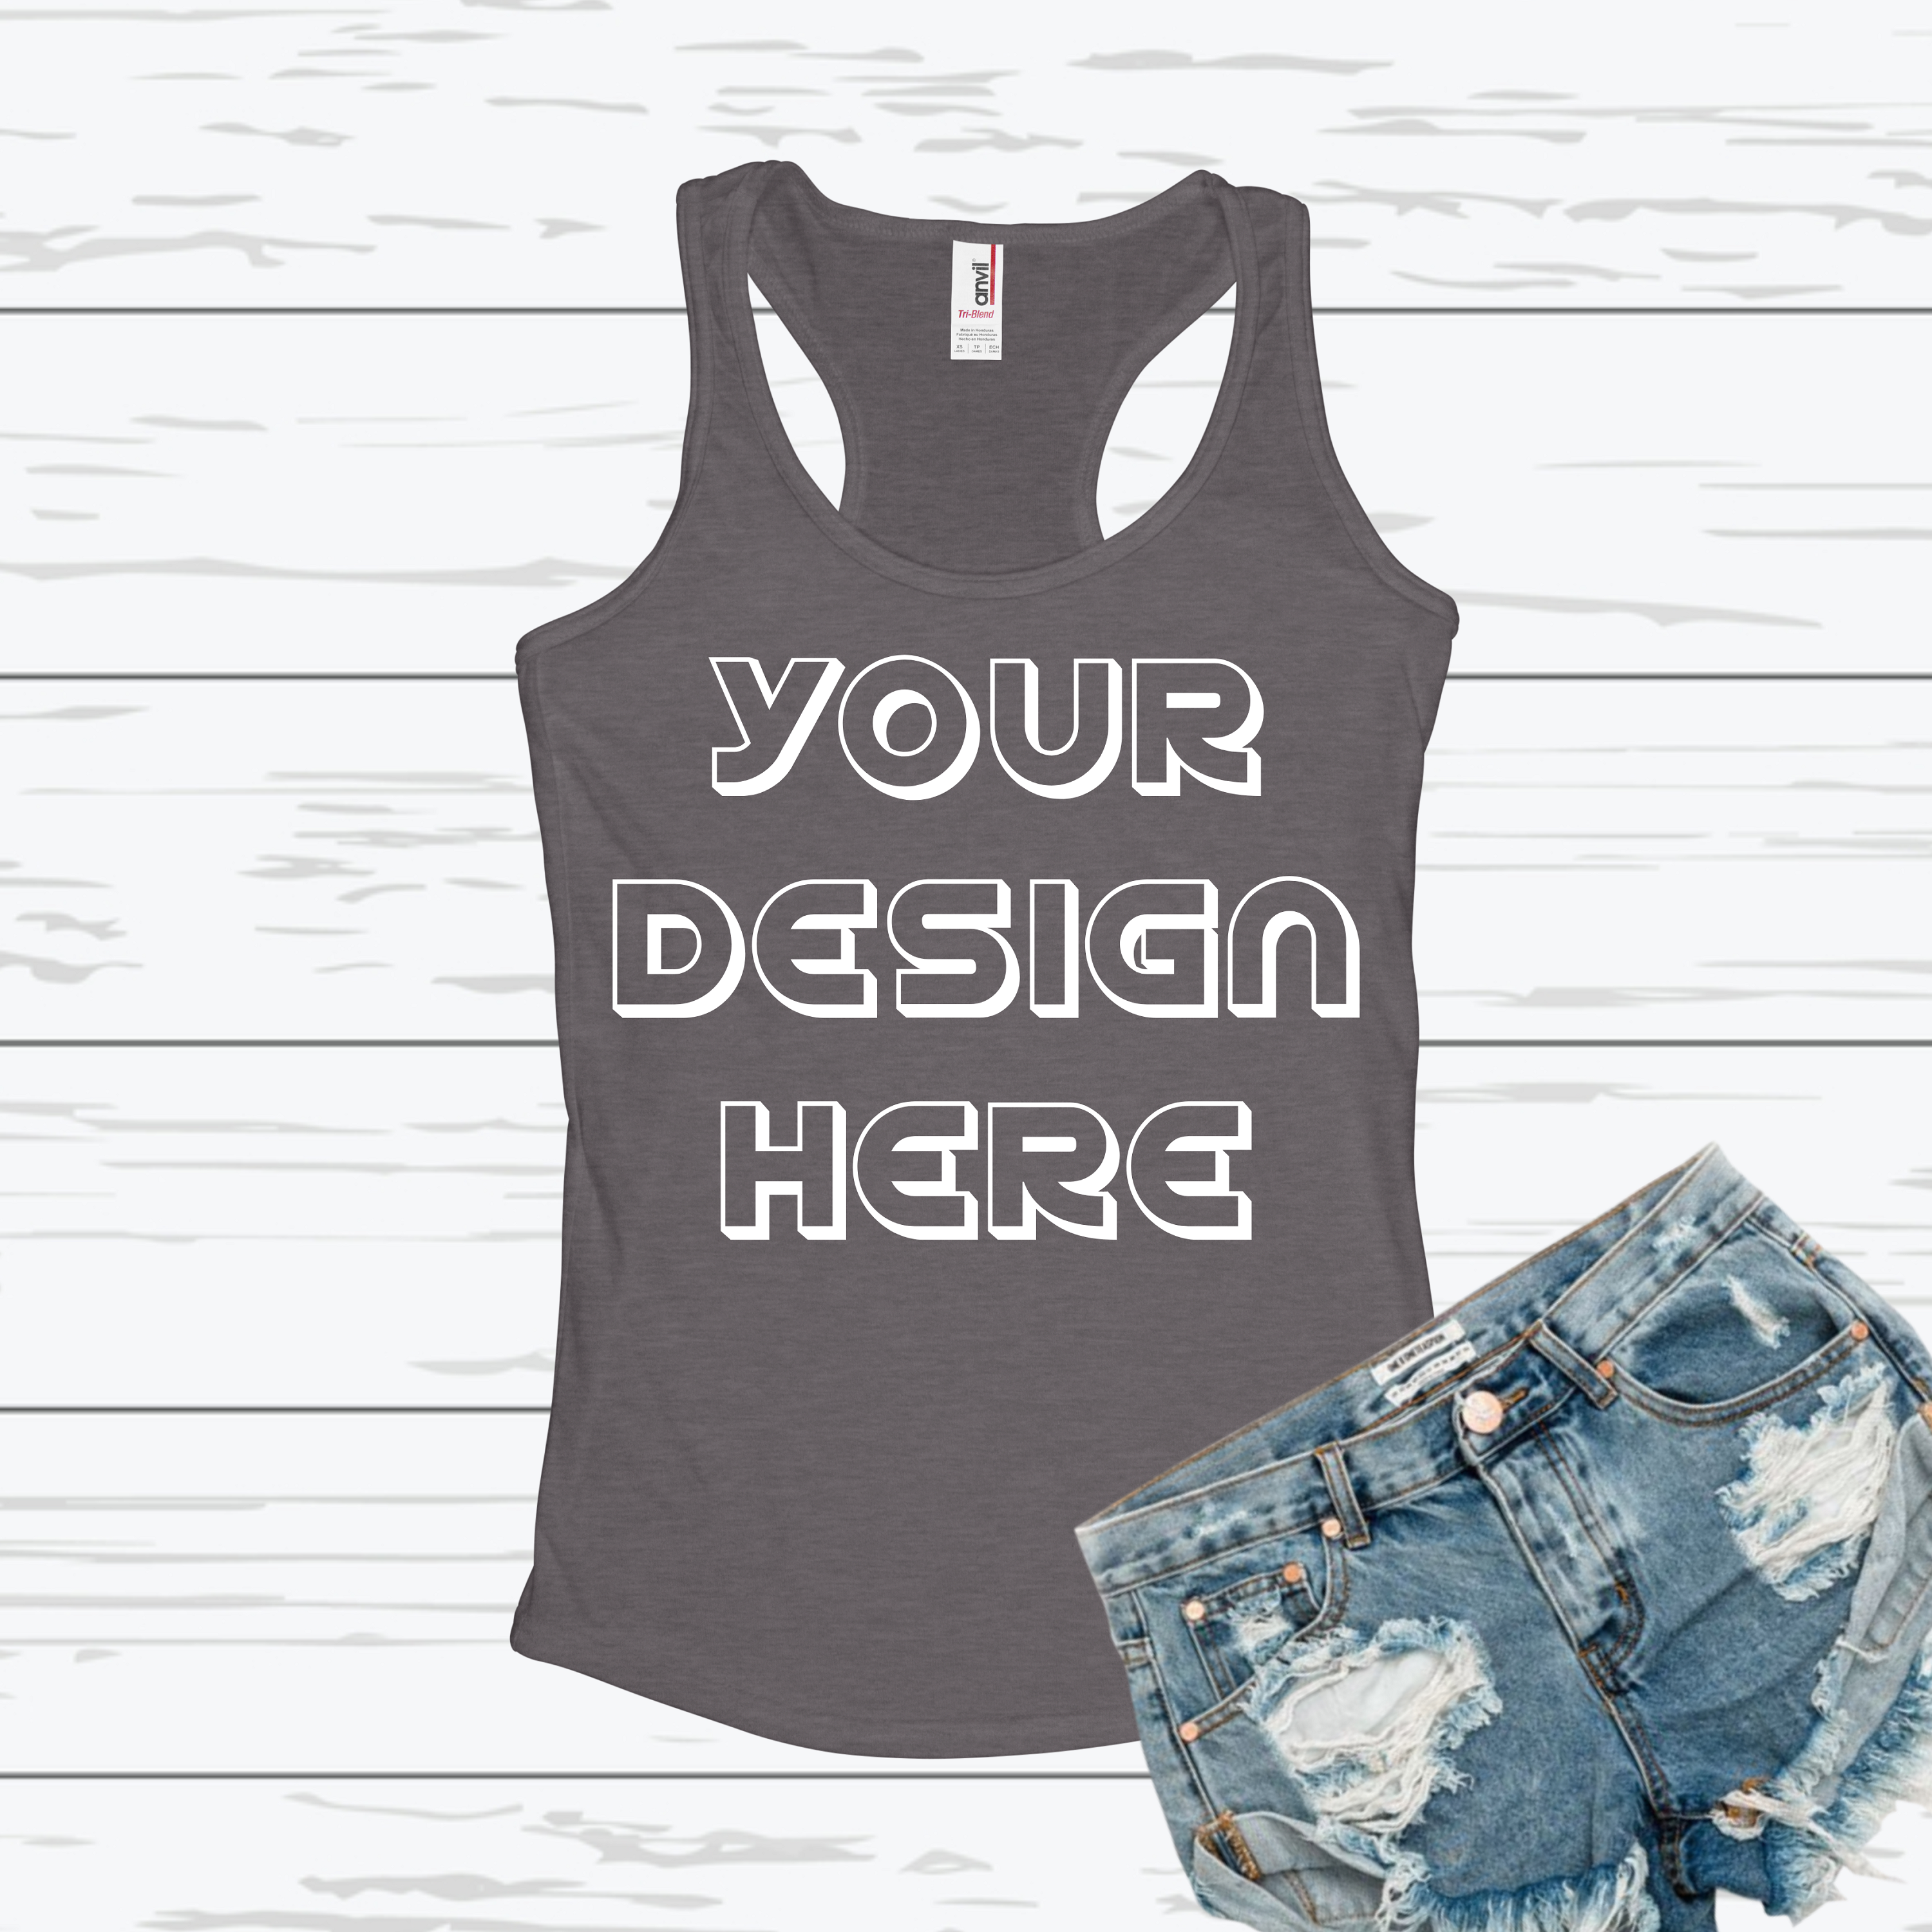 Anvil 6751L Racerback Tank Mockups with Background - 6 example image 3